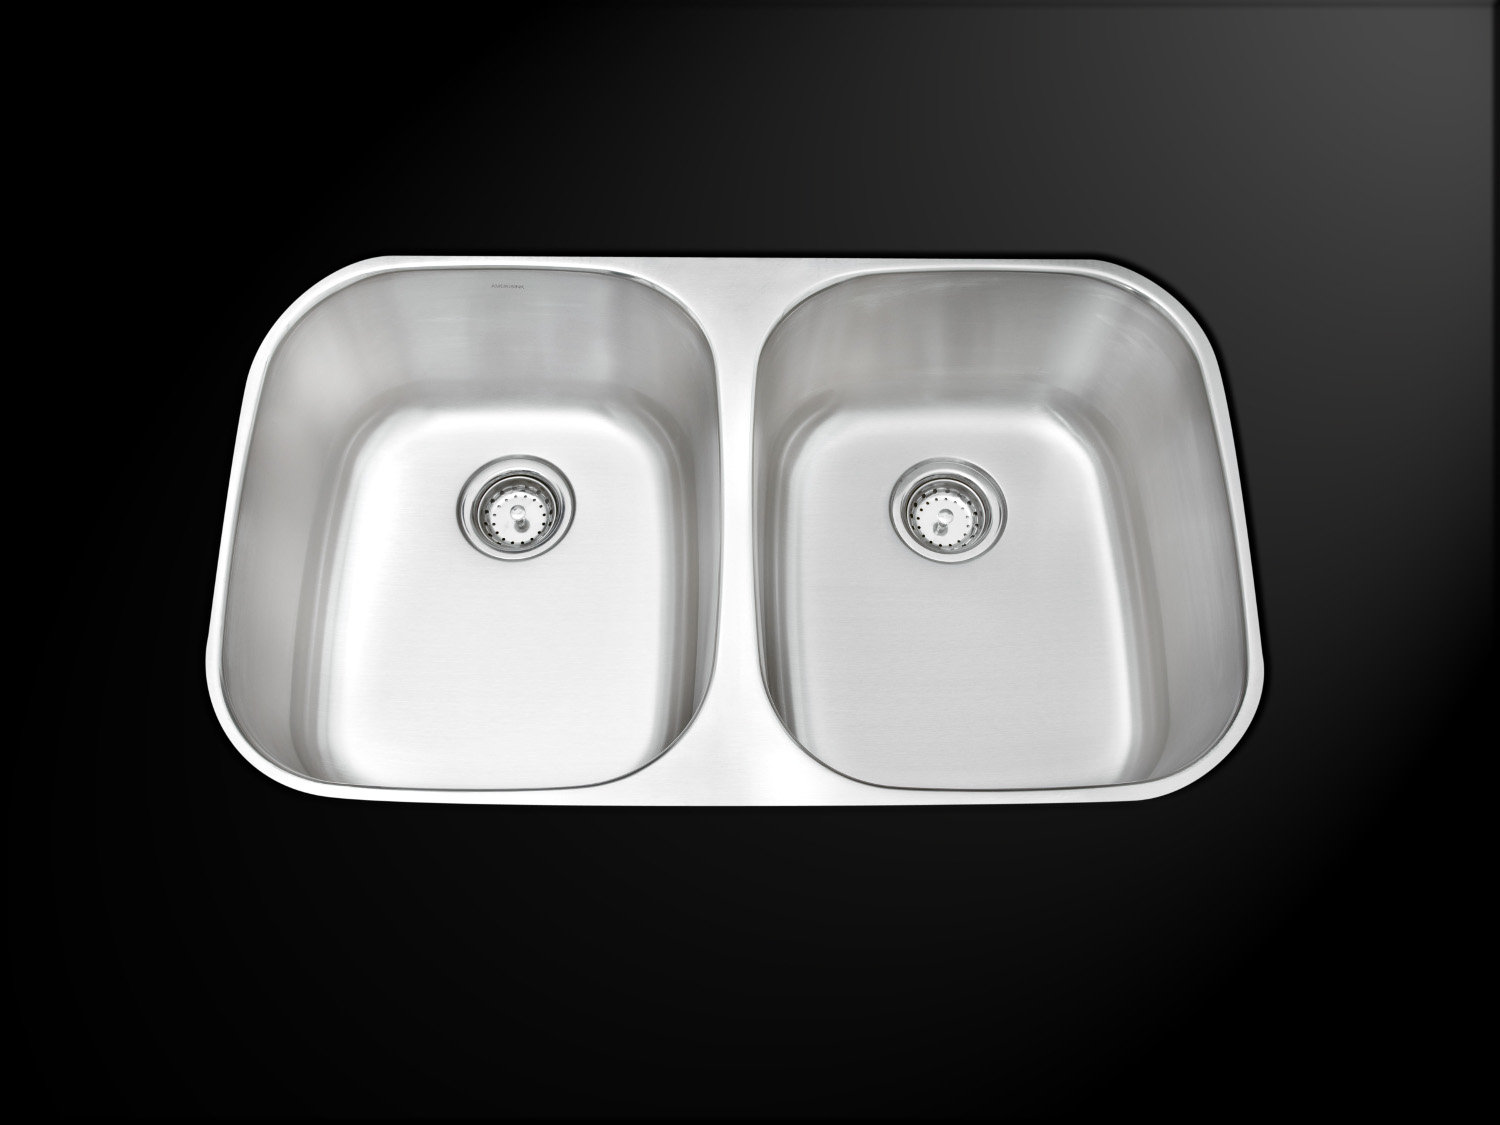 Double Bowl Undermount Economy Stainless Steel Kitchen Sink